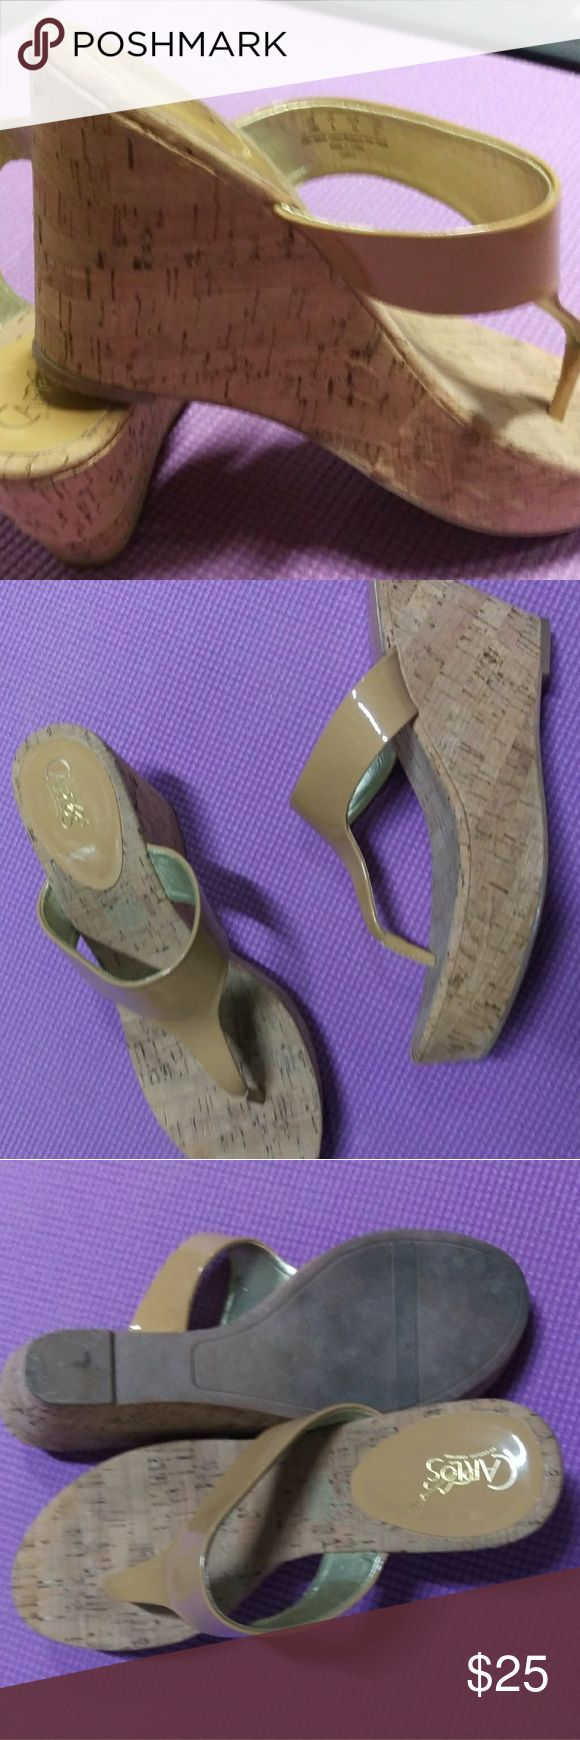 Carlos cork wedge tan thong sandals size 10 Carlos cork wedge sandals, worn a couple times. Summer here in Montana is over so away these go. Bottoms are a little dirty but I'll wash em up. No damage or scuffs. These go with anything! Carlos Santana Shoes Platforms